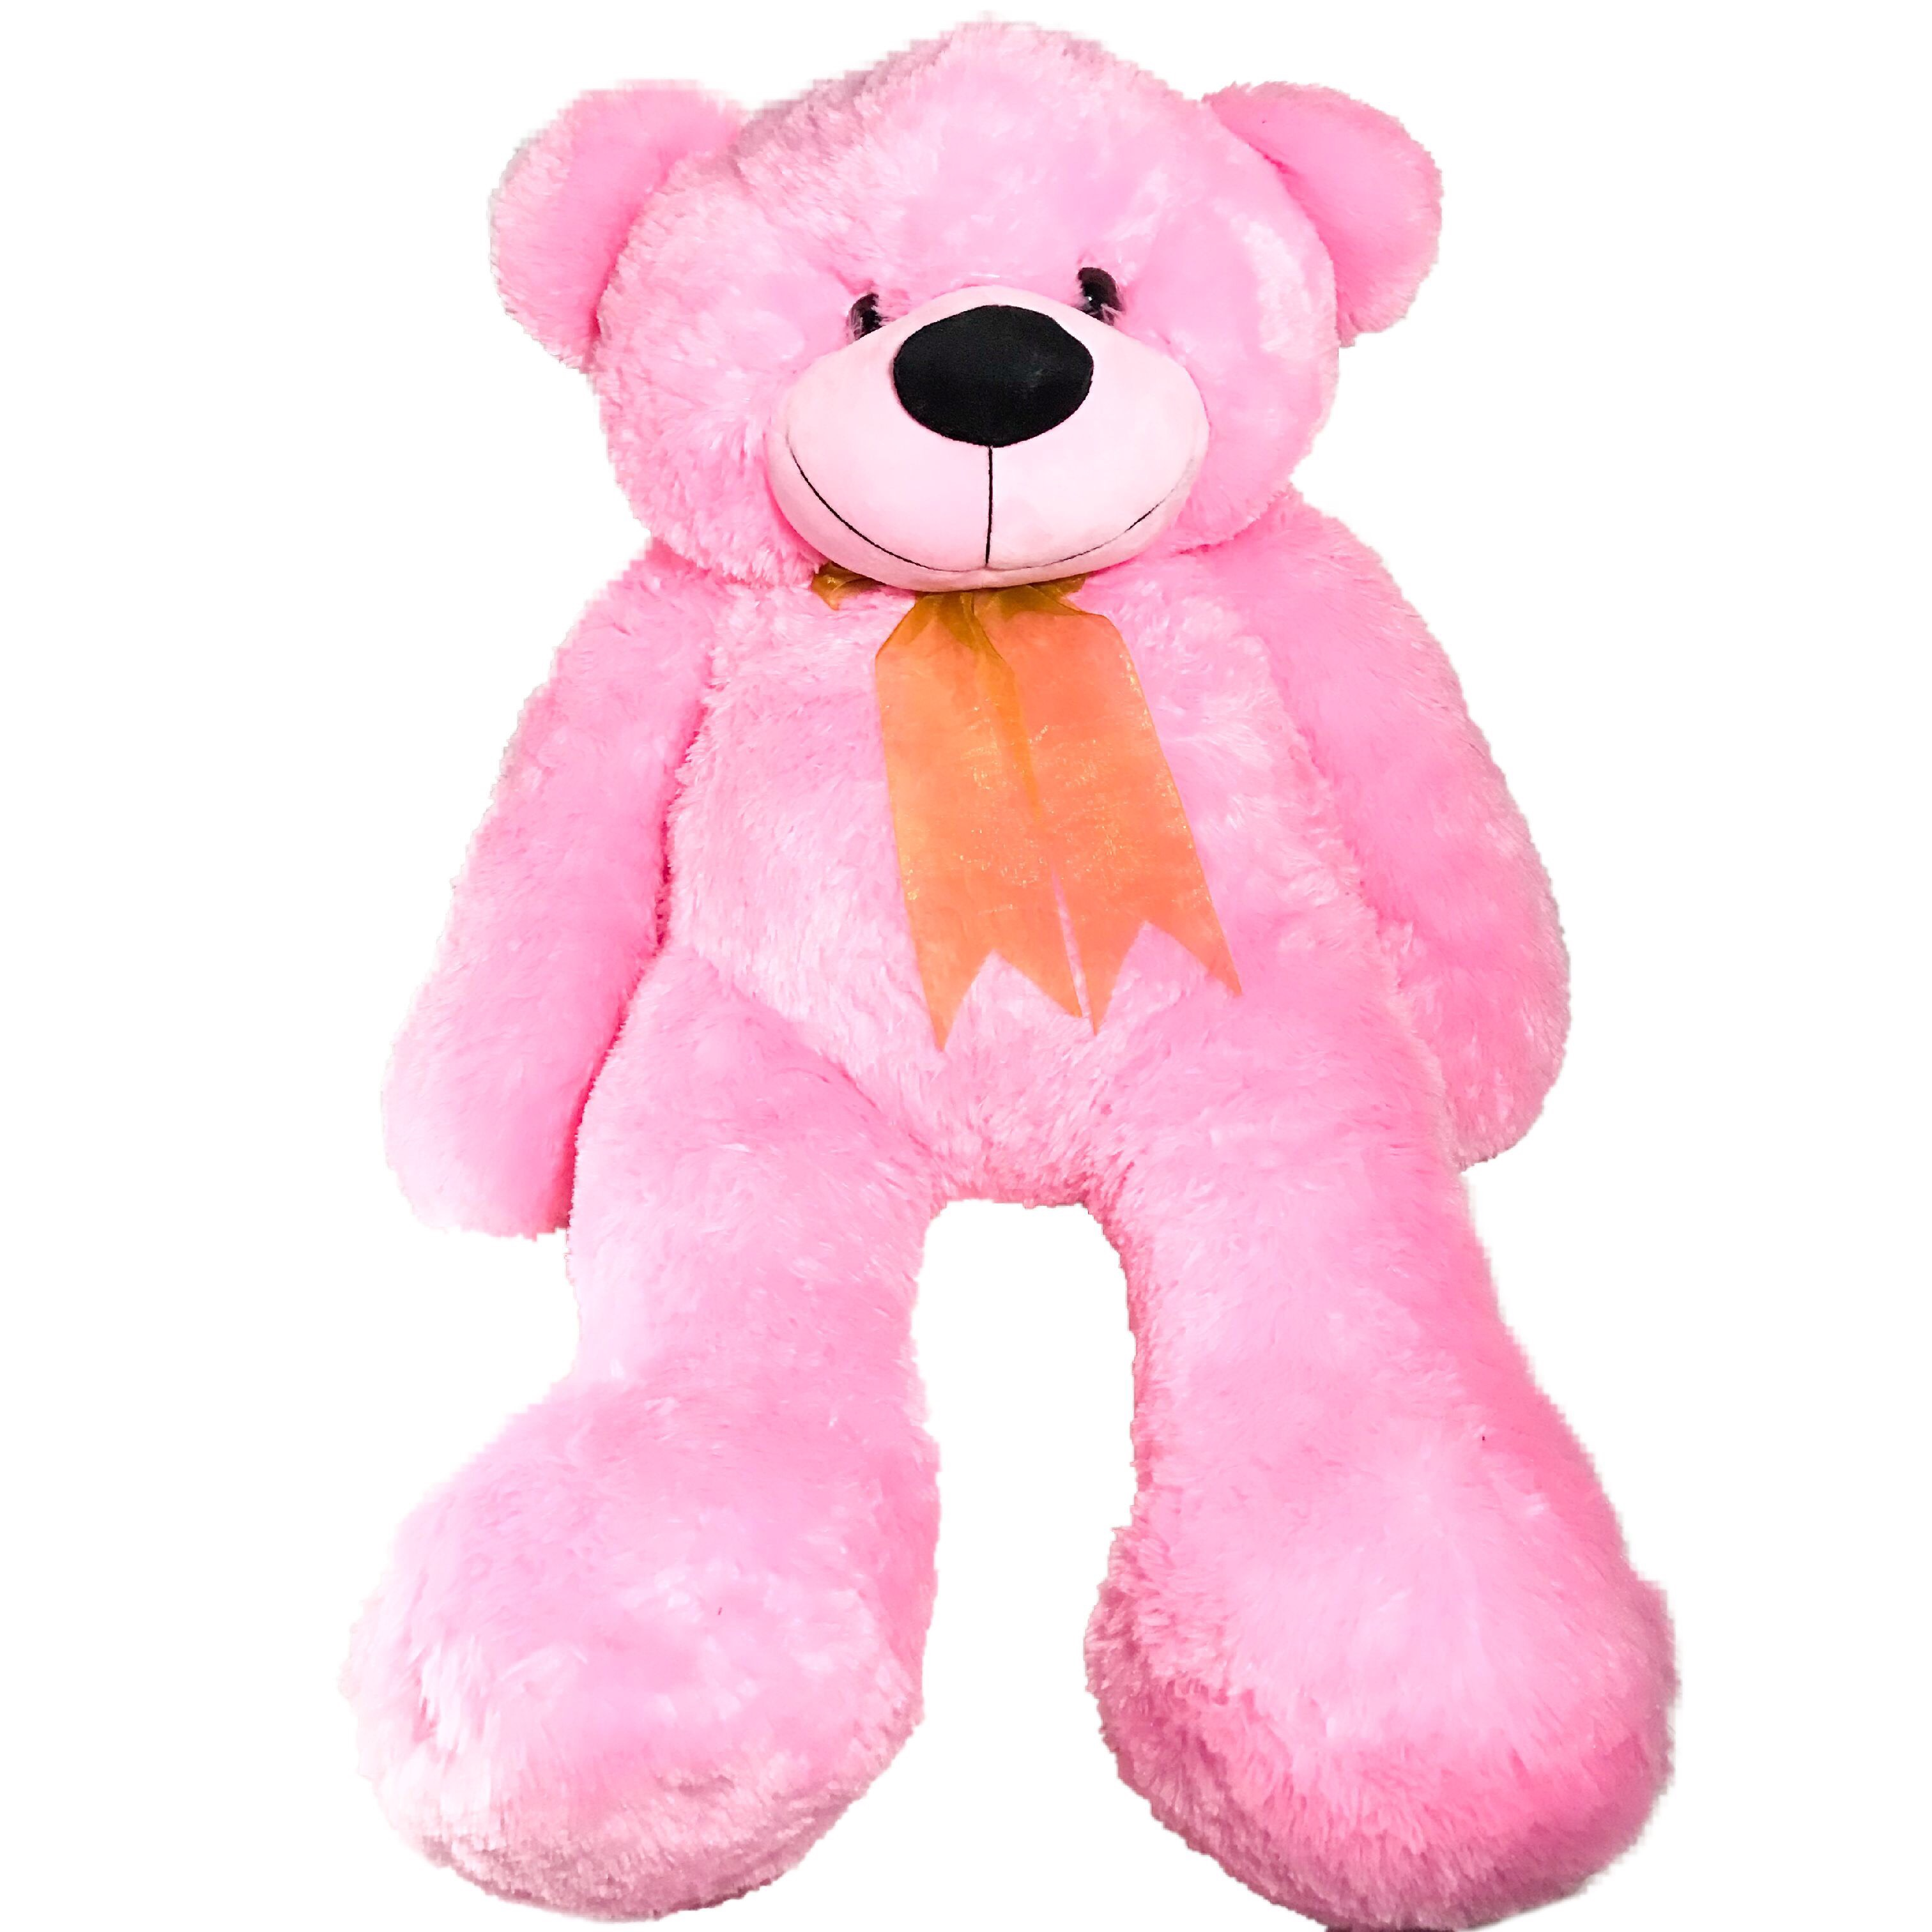 Cozy Huggable 3 Feet Teddy Bear